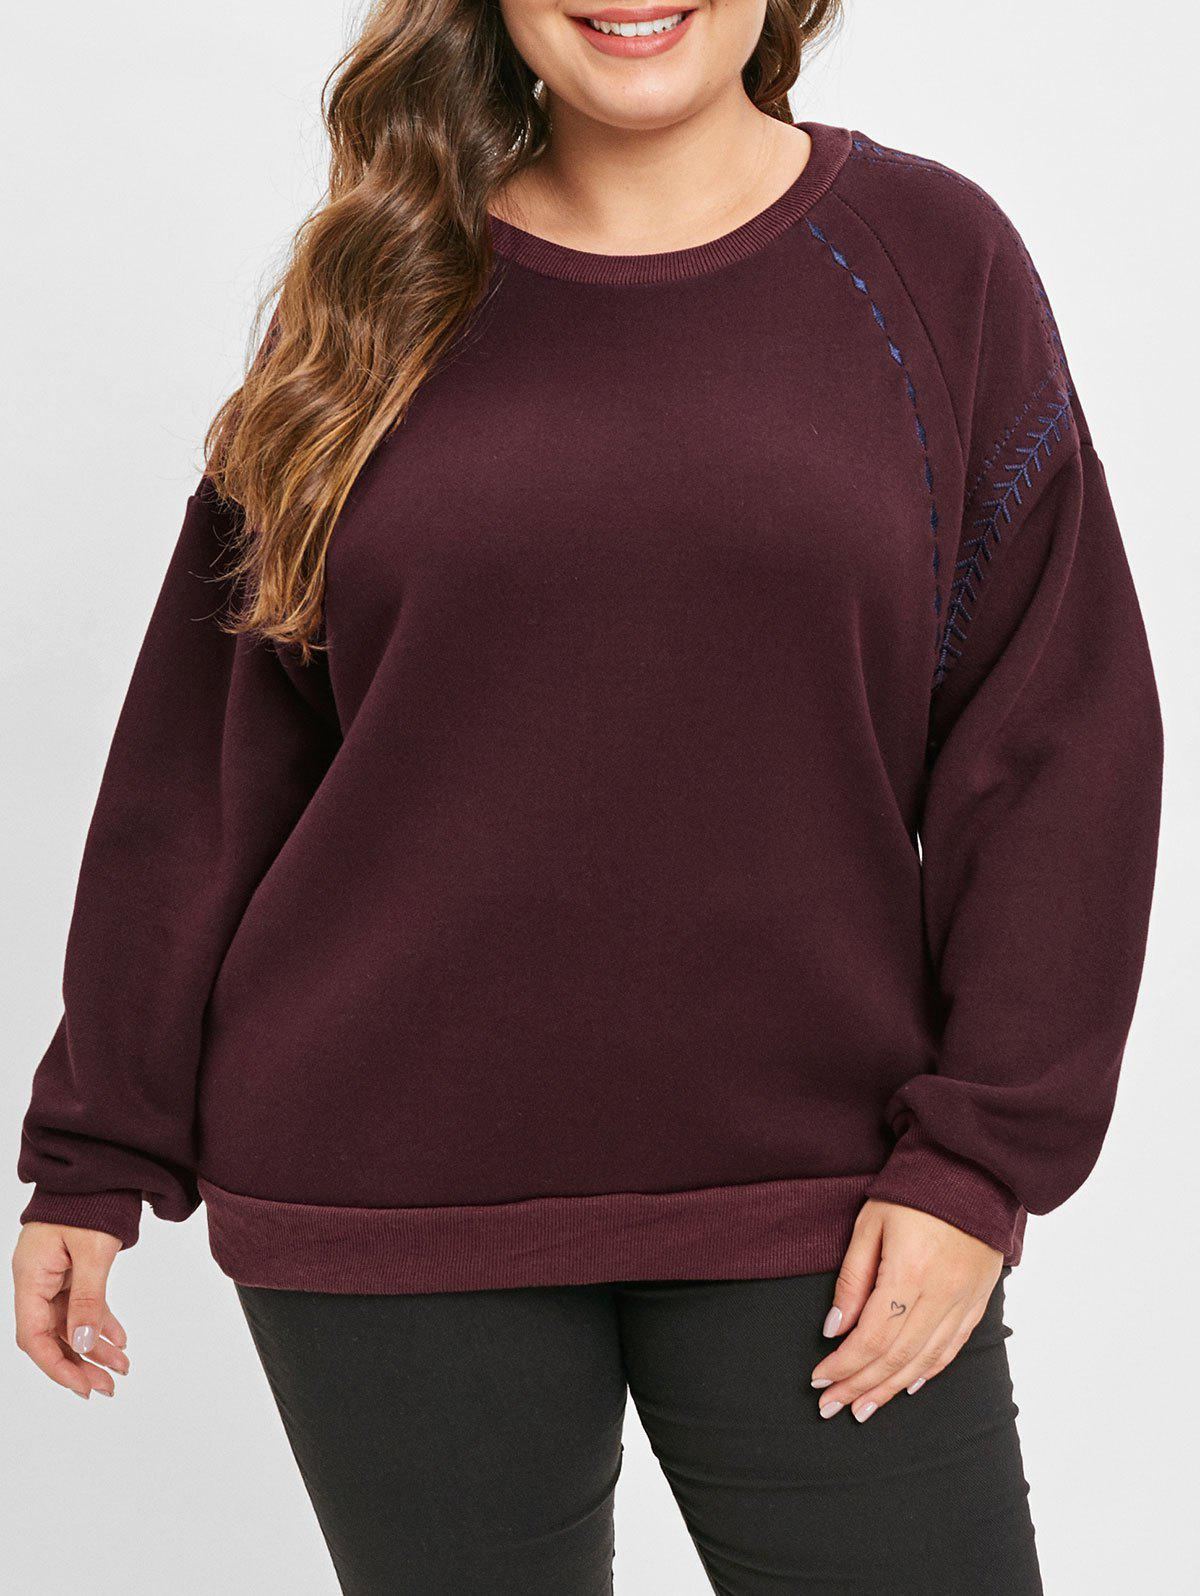 Unique Plus Size Pullover Fleece Sweatshirt with Embroidered